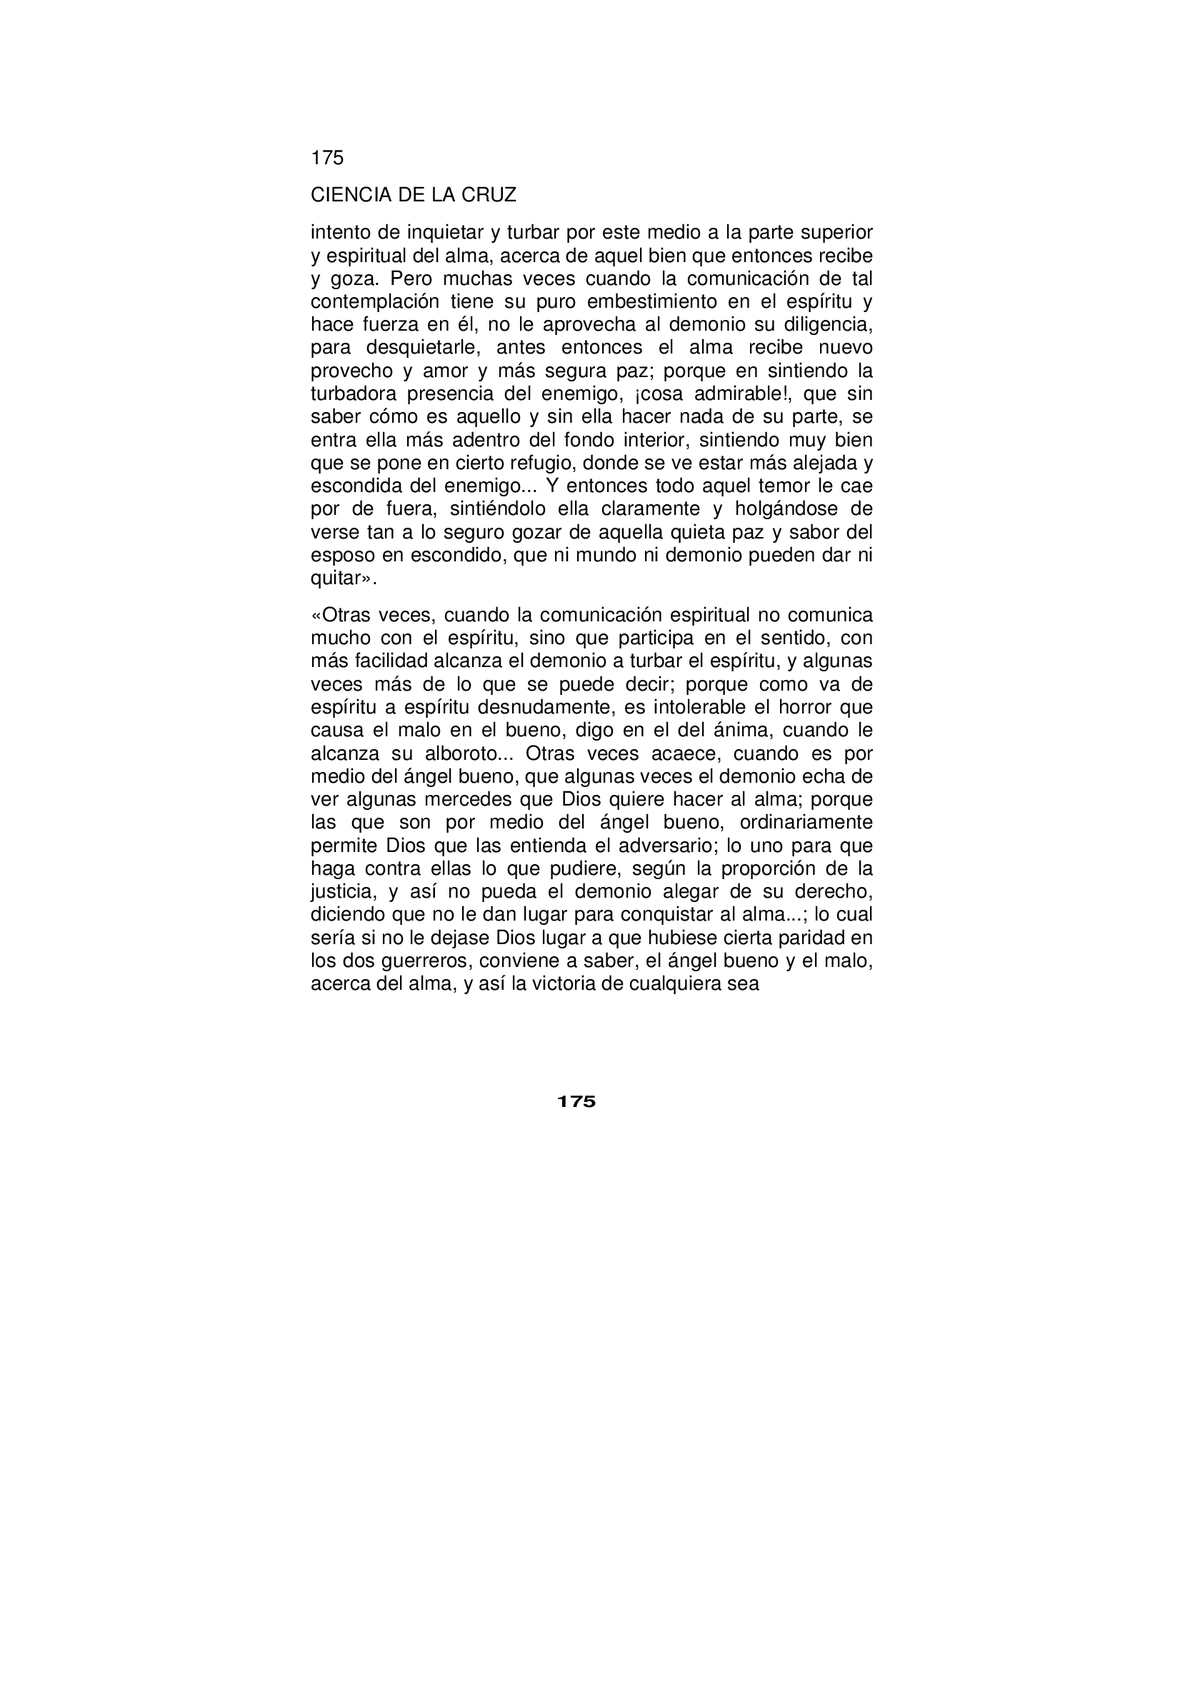 Page 176